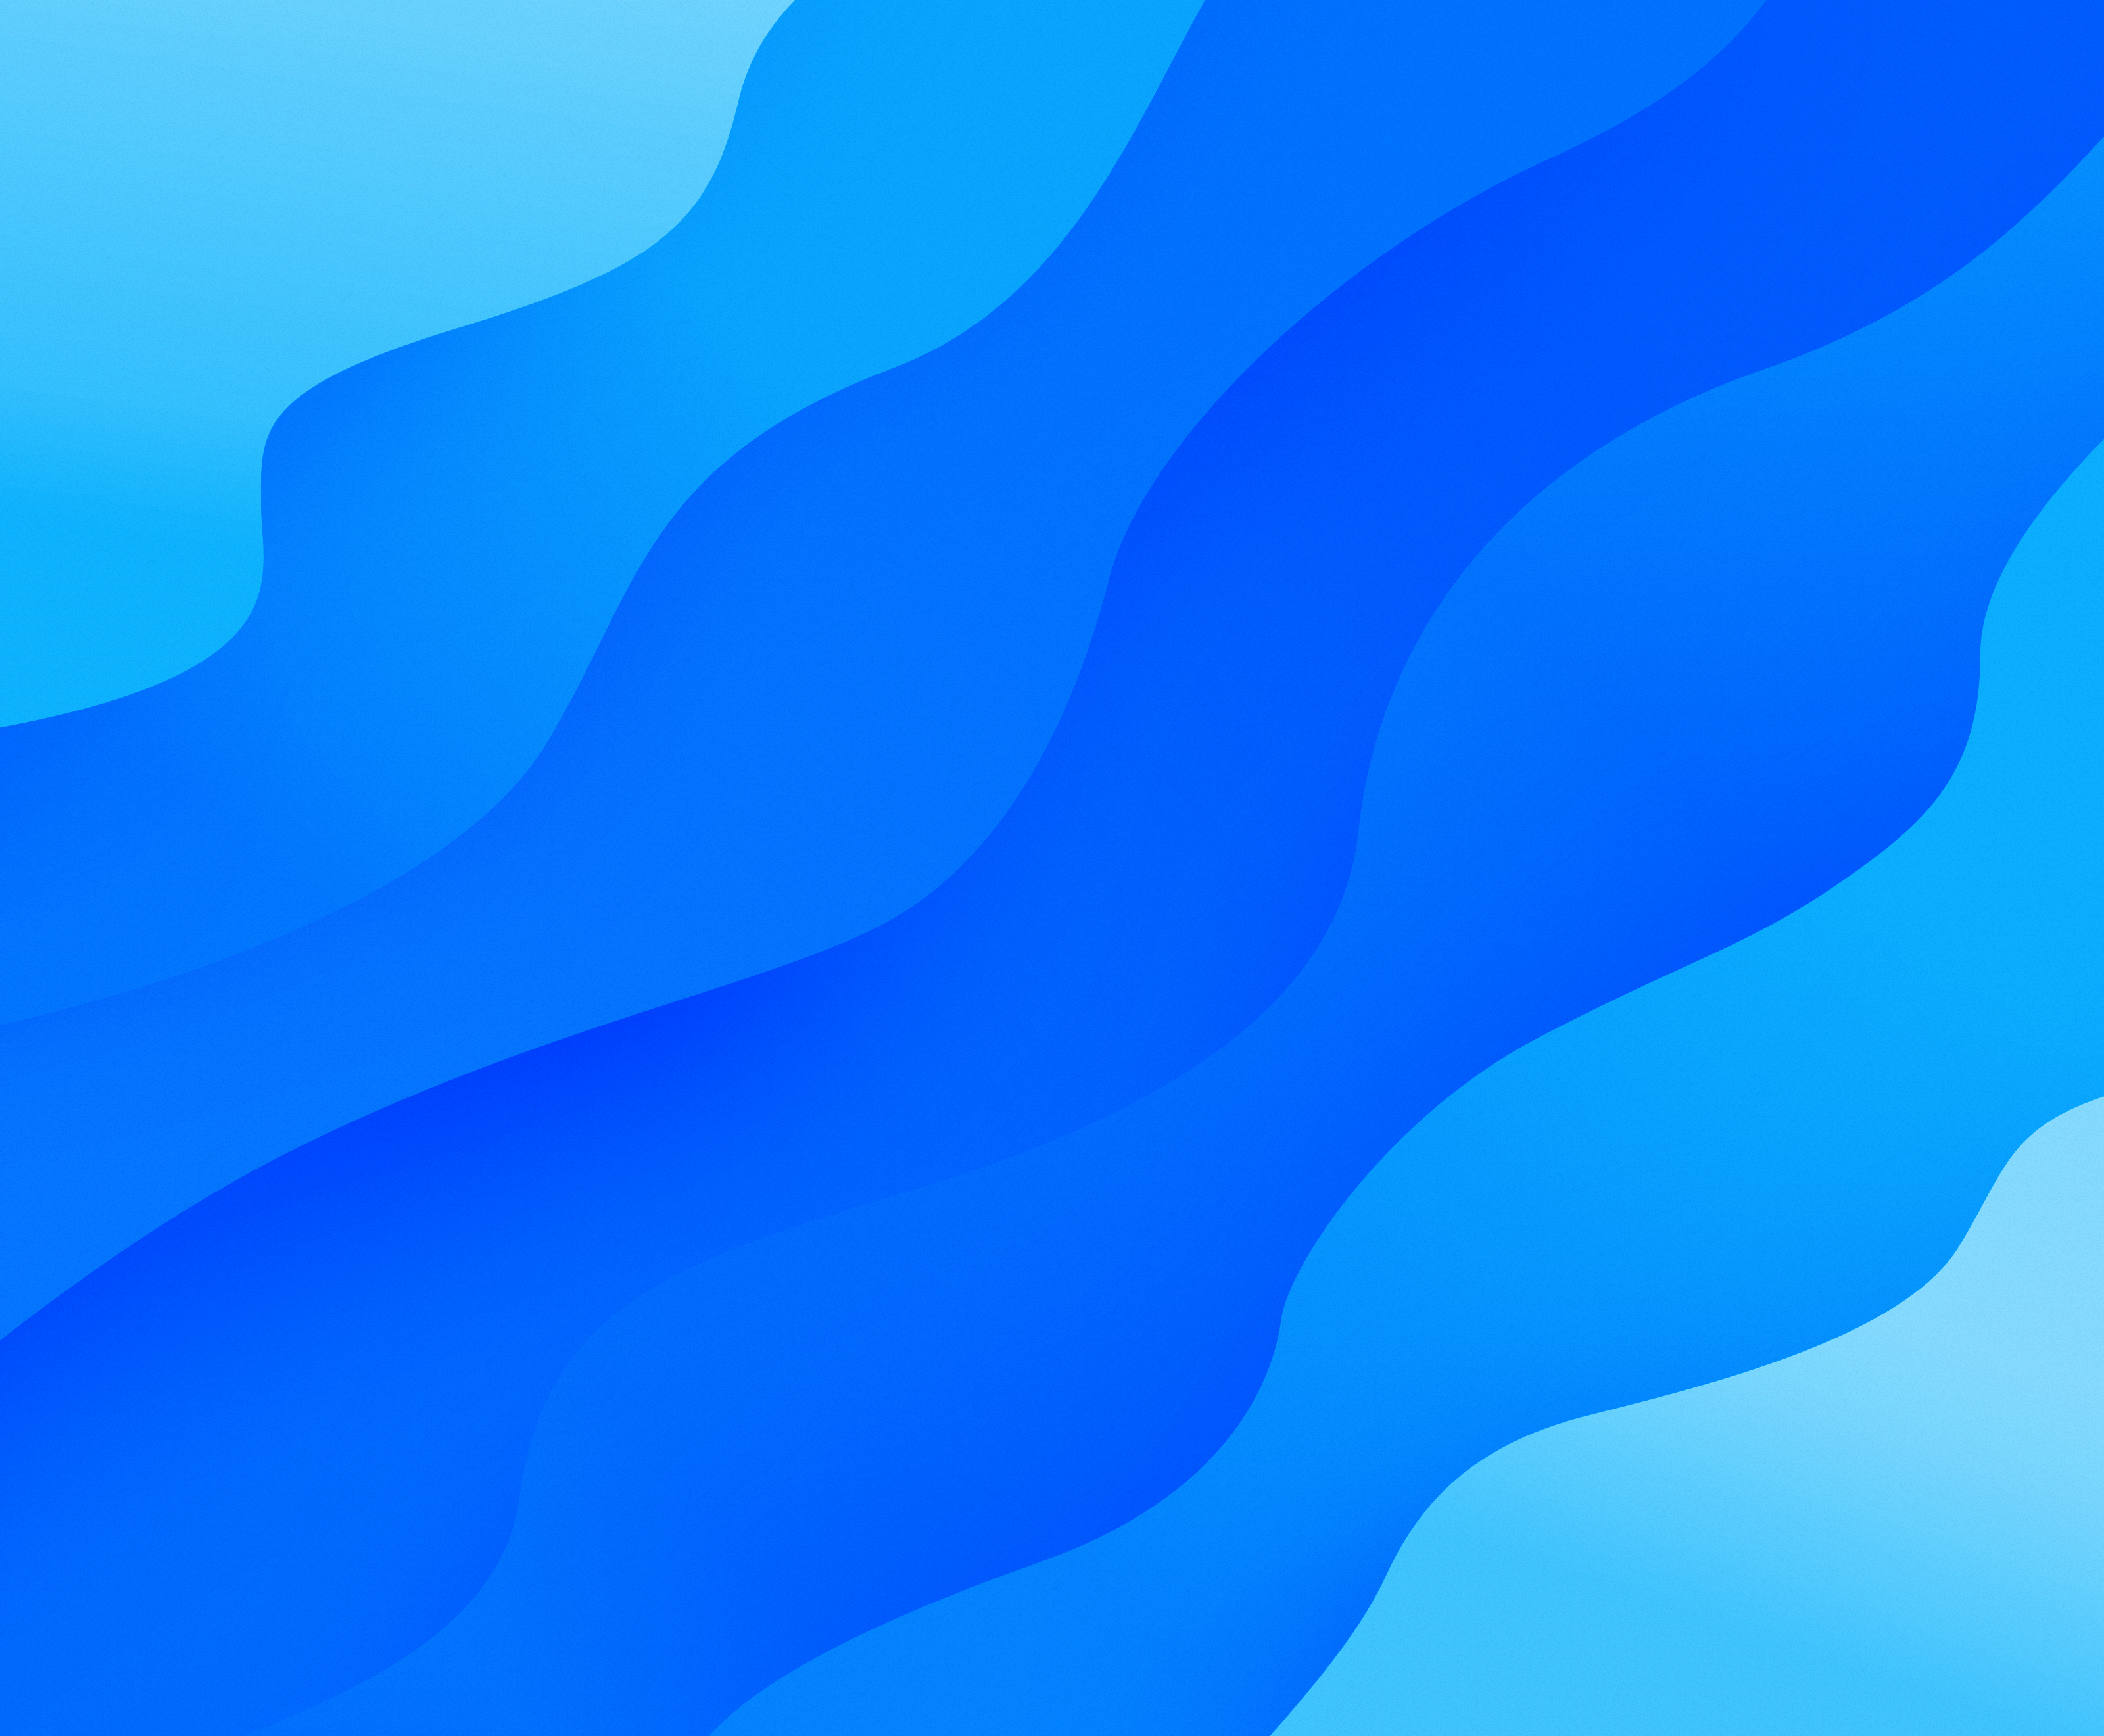 Wavēy — A set of vibrant wallpapers